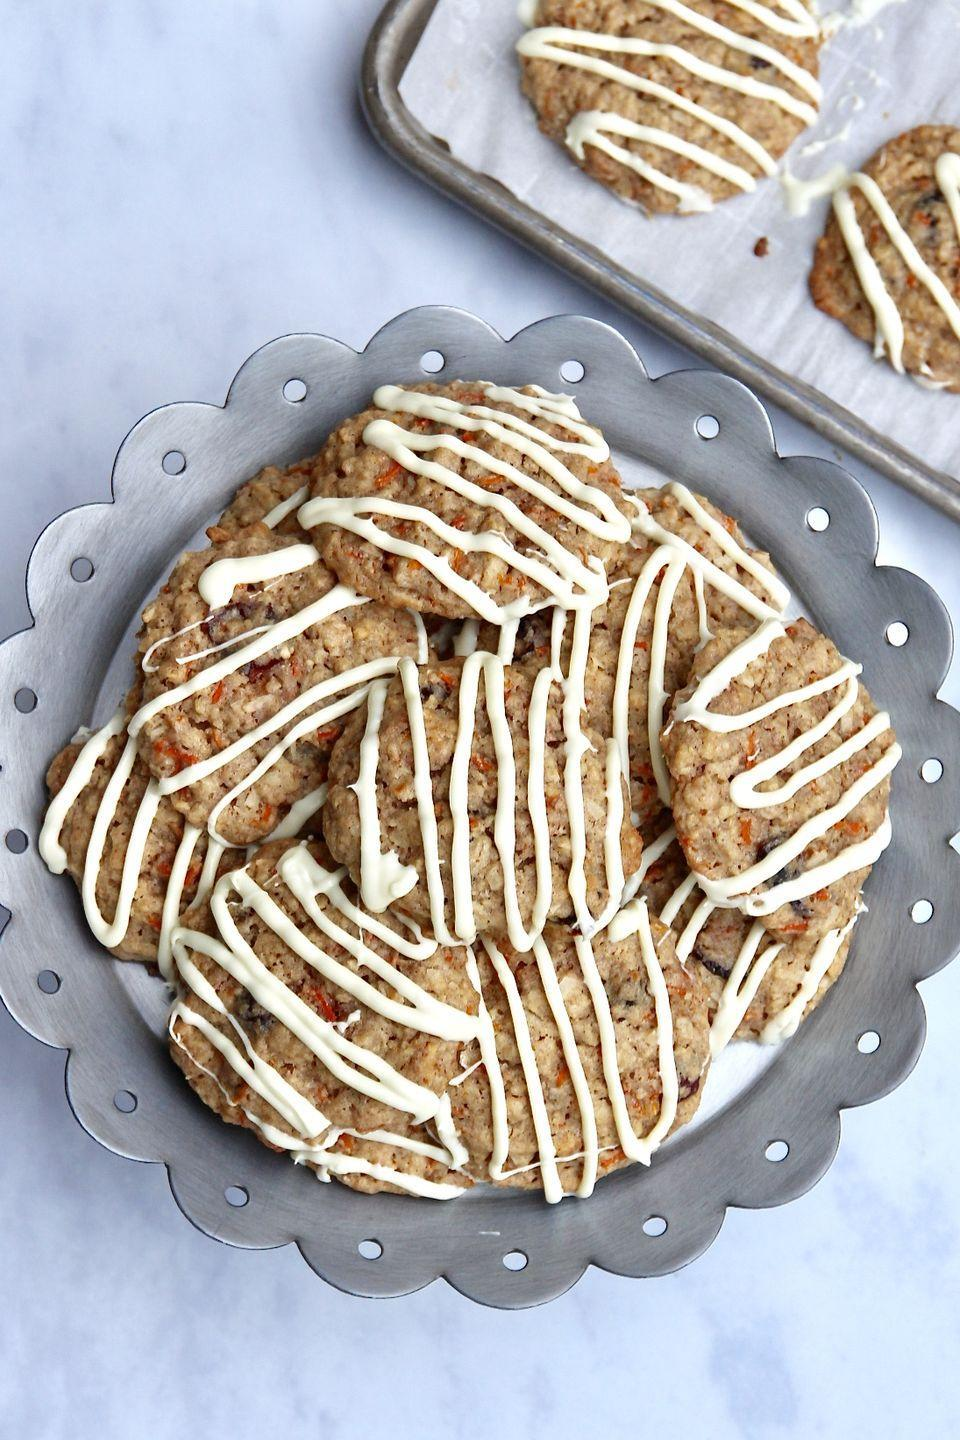 "<p>These cookies taste just like a heavenly slice of carrot cake! They're perfect to spread out with the rest of your Easter treats.</p><p><strong>Get the recipe at <a href=""https://thebakermama.com/recipes/carrot-cake-cookies/"" rel=""nofollow noopener"" target=""_blank"" data-ylk=""slk:The Baker Mama"" class=""link rapid-noclick-resp"">The Baker Mama</a>.</strong></p><p><strong><a class=""link rapid-noclick-resp"" href=""https://go.redirectingat.com?id=74968X1596630&url=https%3A%2F%2Fwww.walmart.com%2Fsearch%2F%3Fquery%3Dbaking%2Bmats&sref=https%3A%2F%2Fwww.thepioneerwoman.com%2Ffood-cooking%2Fmeals-menus%2Fg35408493%2Feaster-desserts%2F"" rel=""nofollow noopener"" target=""_blank"" data-ylk=""slk:SHOP BAKING MATS"">SHOP BAKING MATS</a><br></strong></p>"